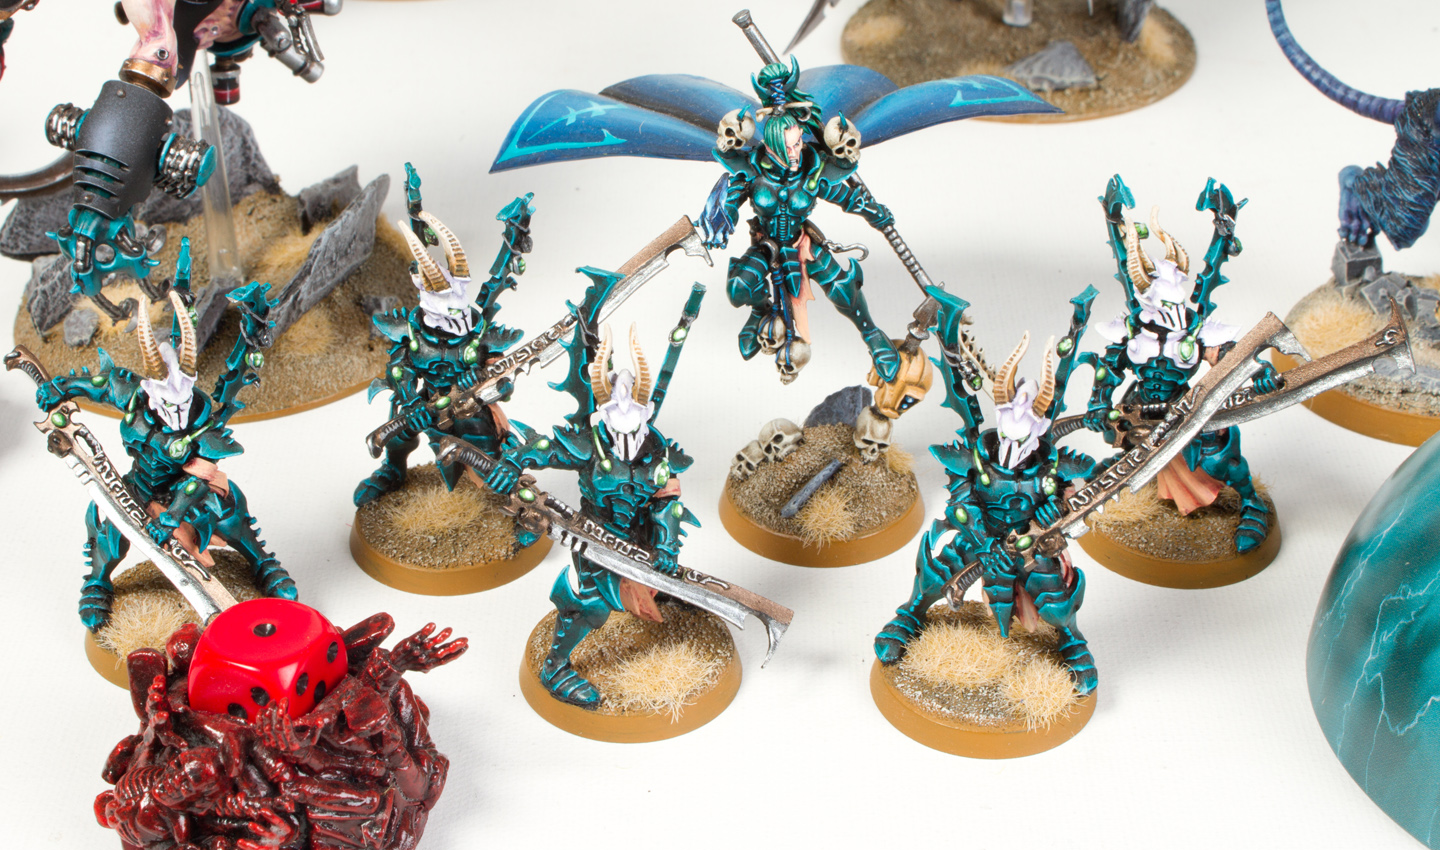 Showcase dark eldar army tale of painters my dark eldar army was started as soon as the new models came out back in 2009 i was extremely excited to hear jes goodwin working on new space elf models publicscrutiny Image collections